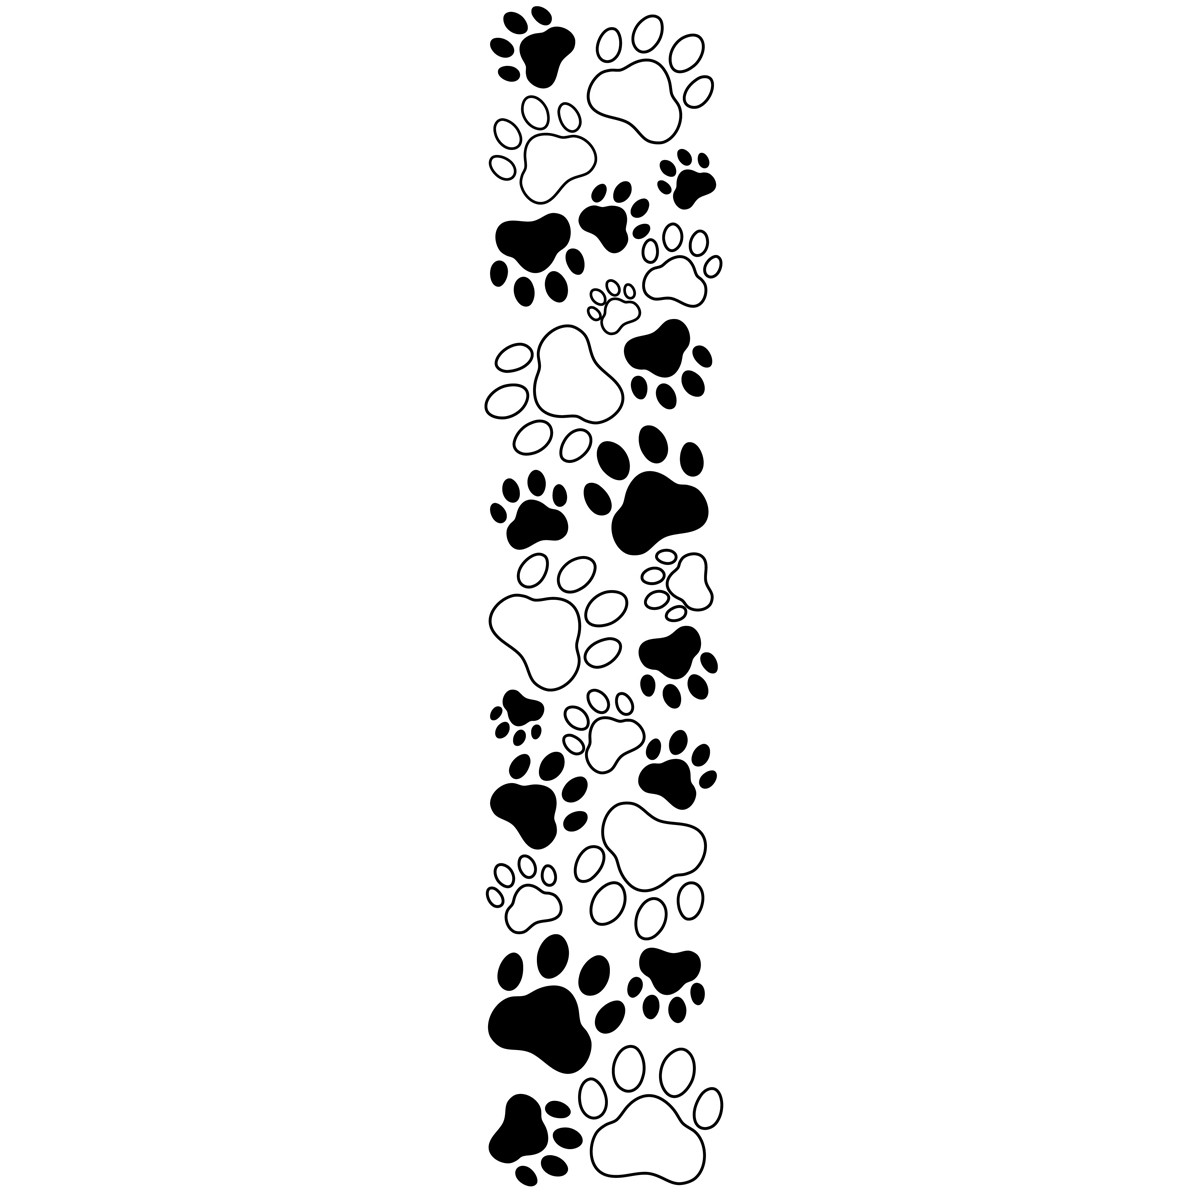 Dog paw print clip art free clipart images image #19288